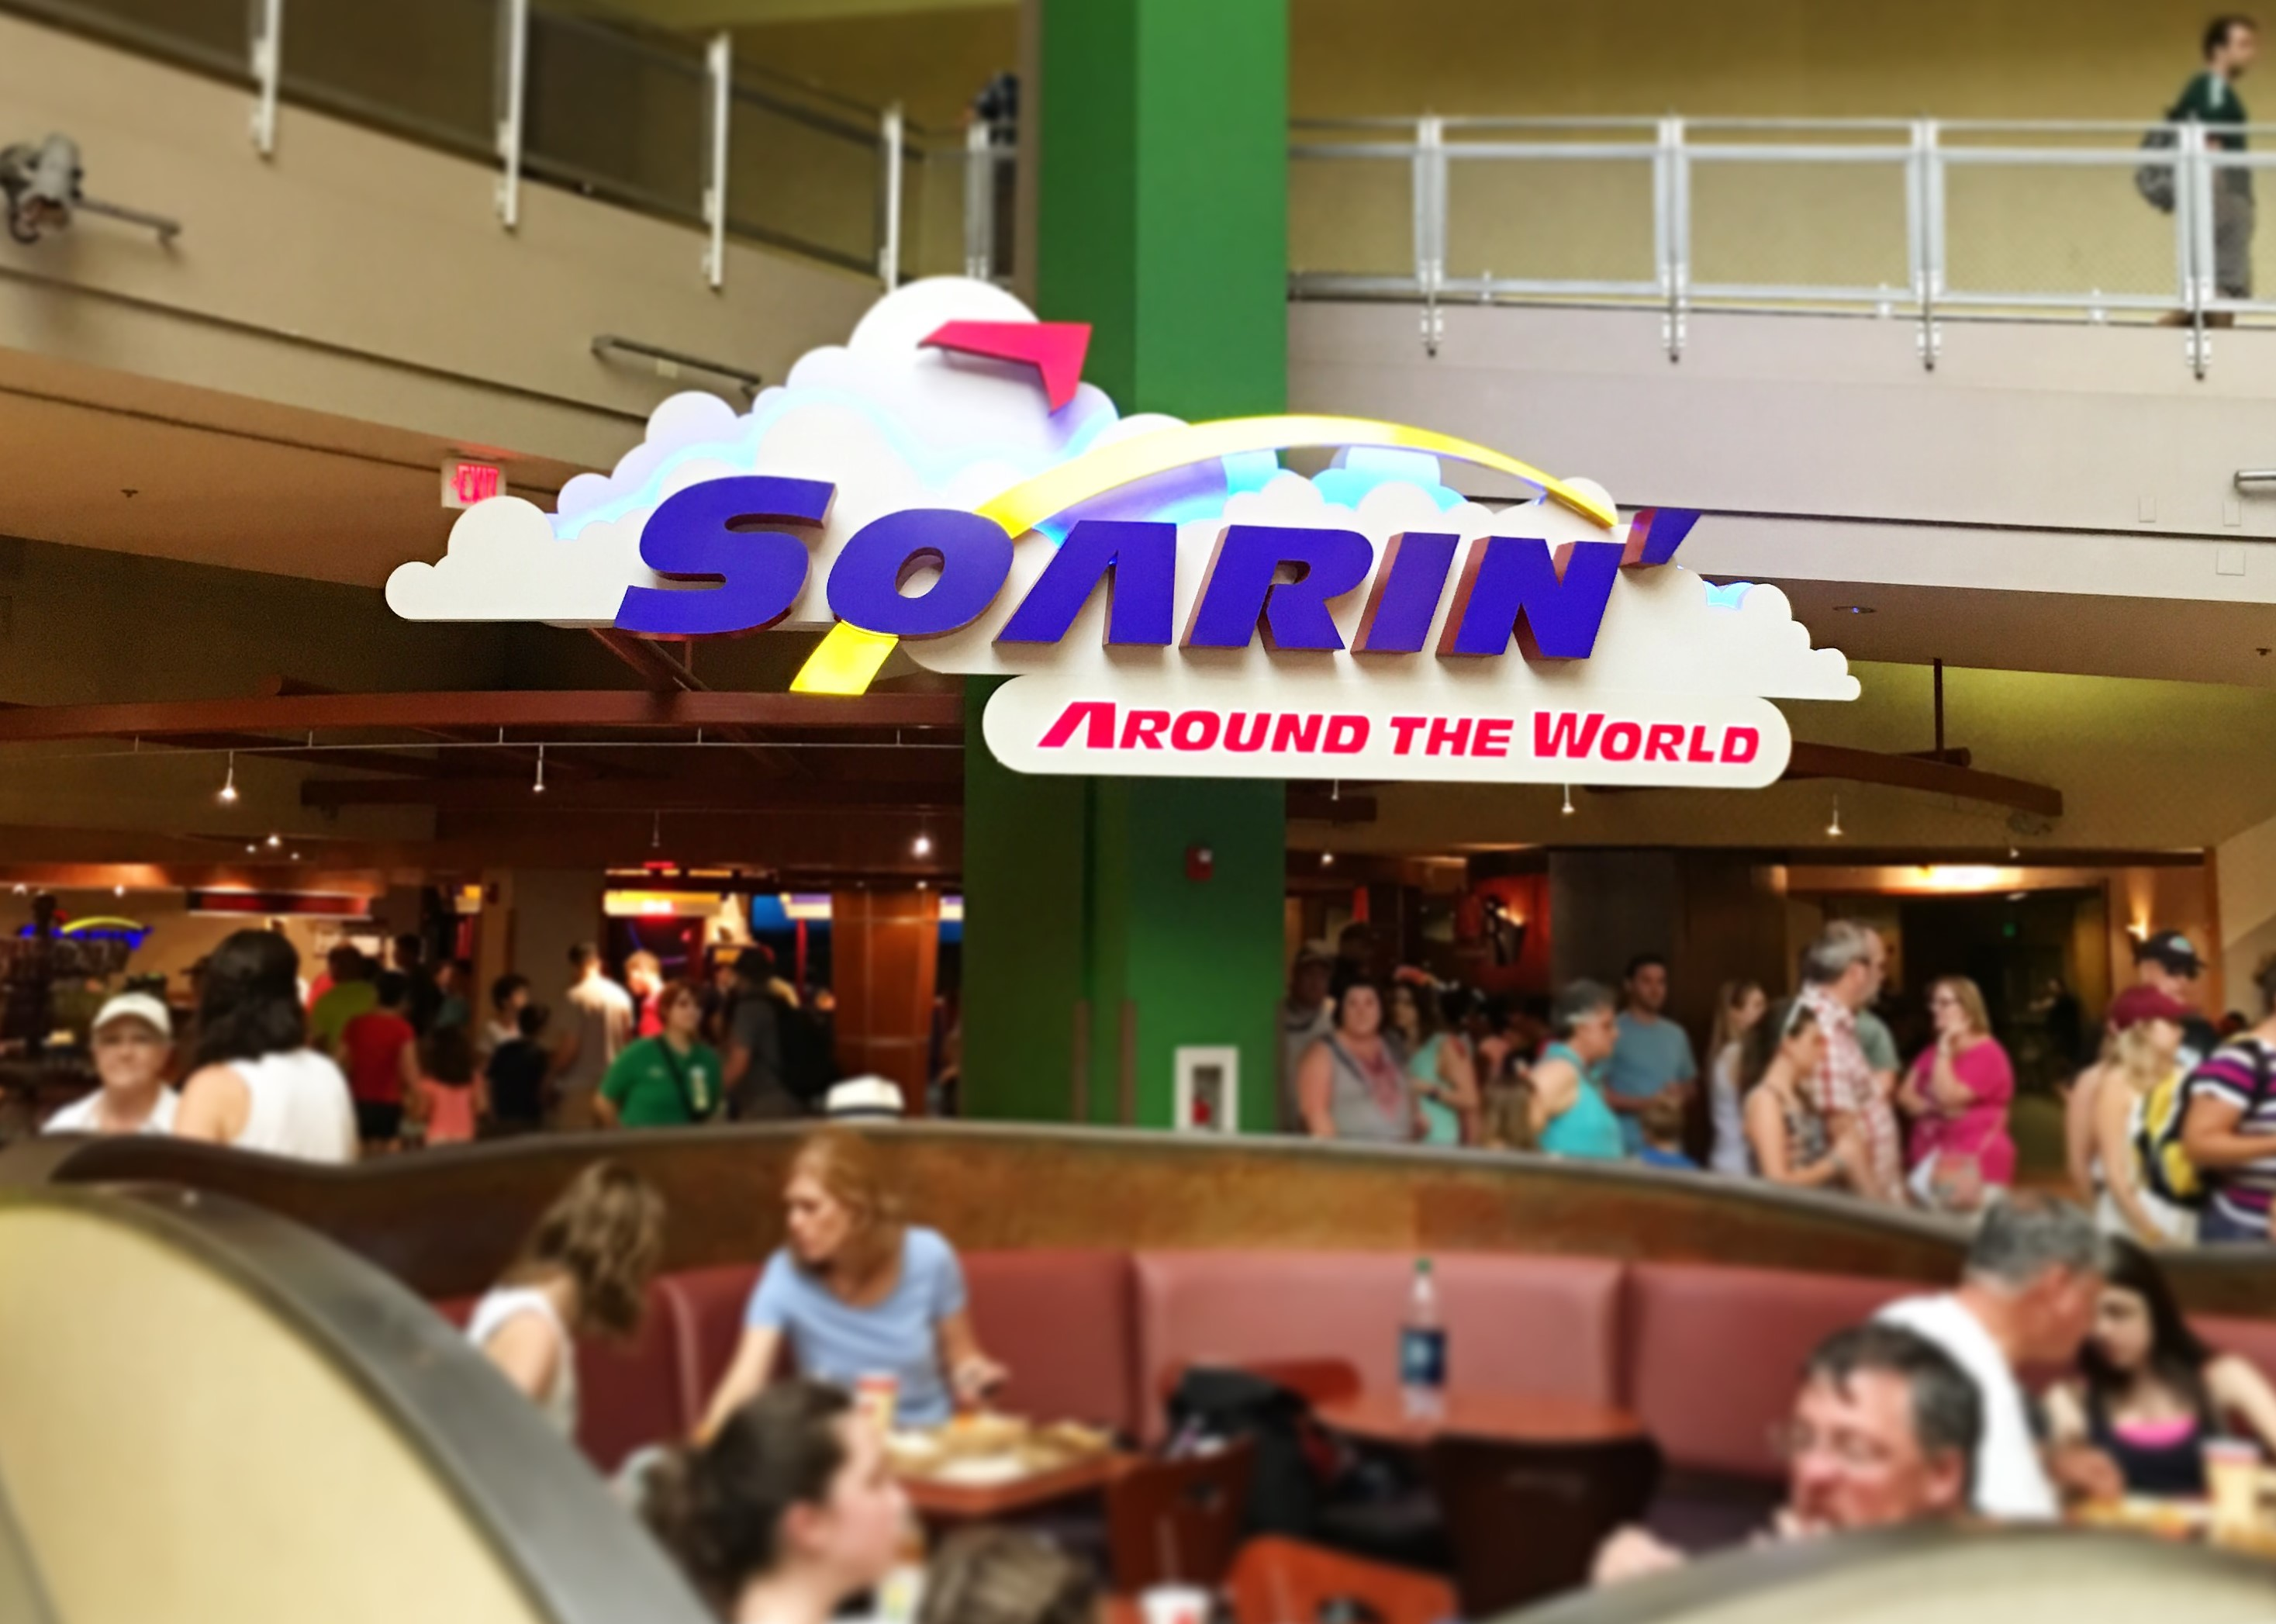 soarin around the world Best Fastpasses for Epcot